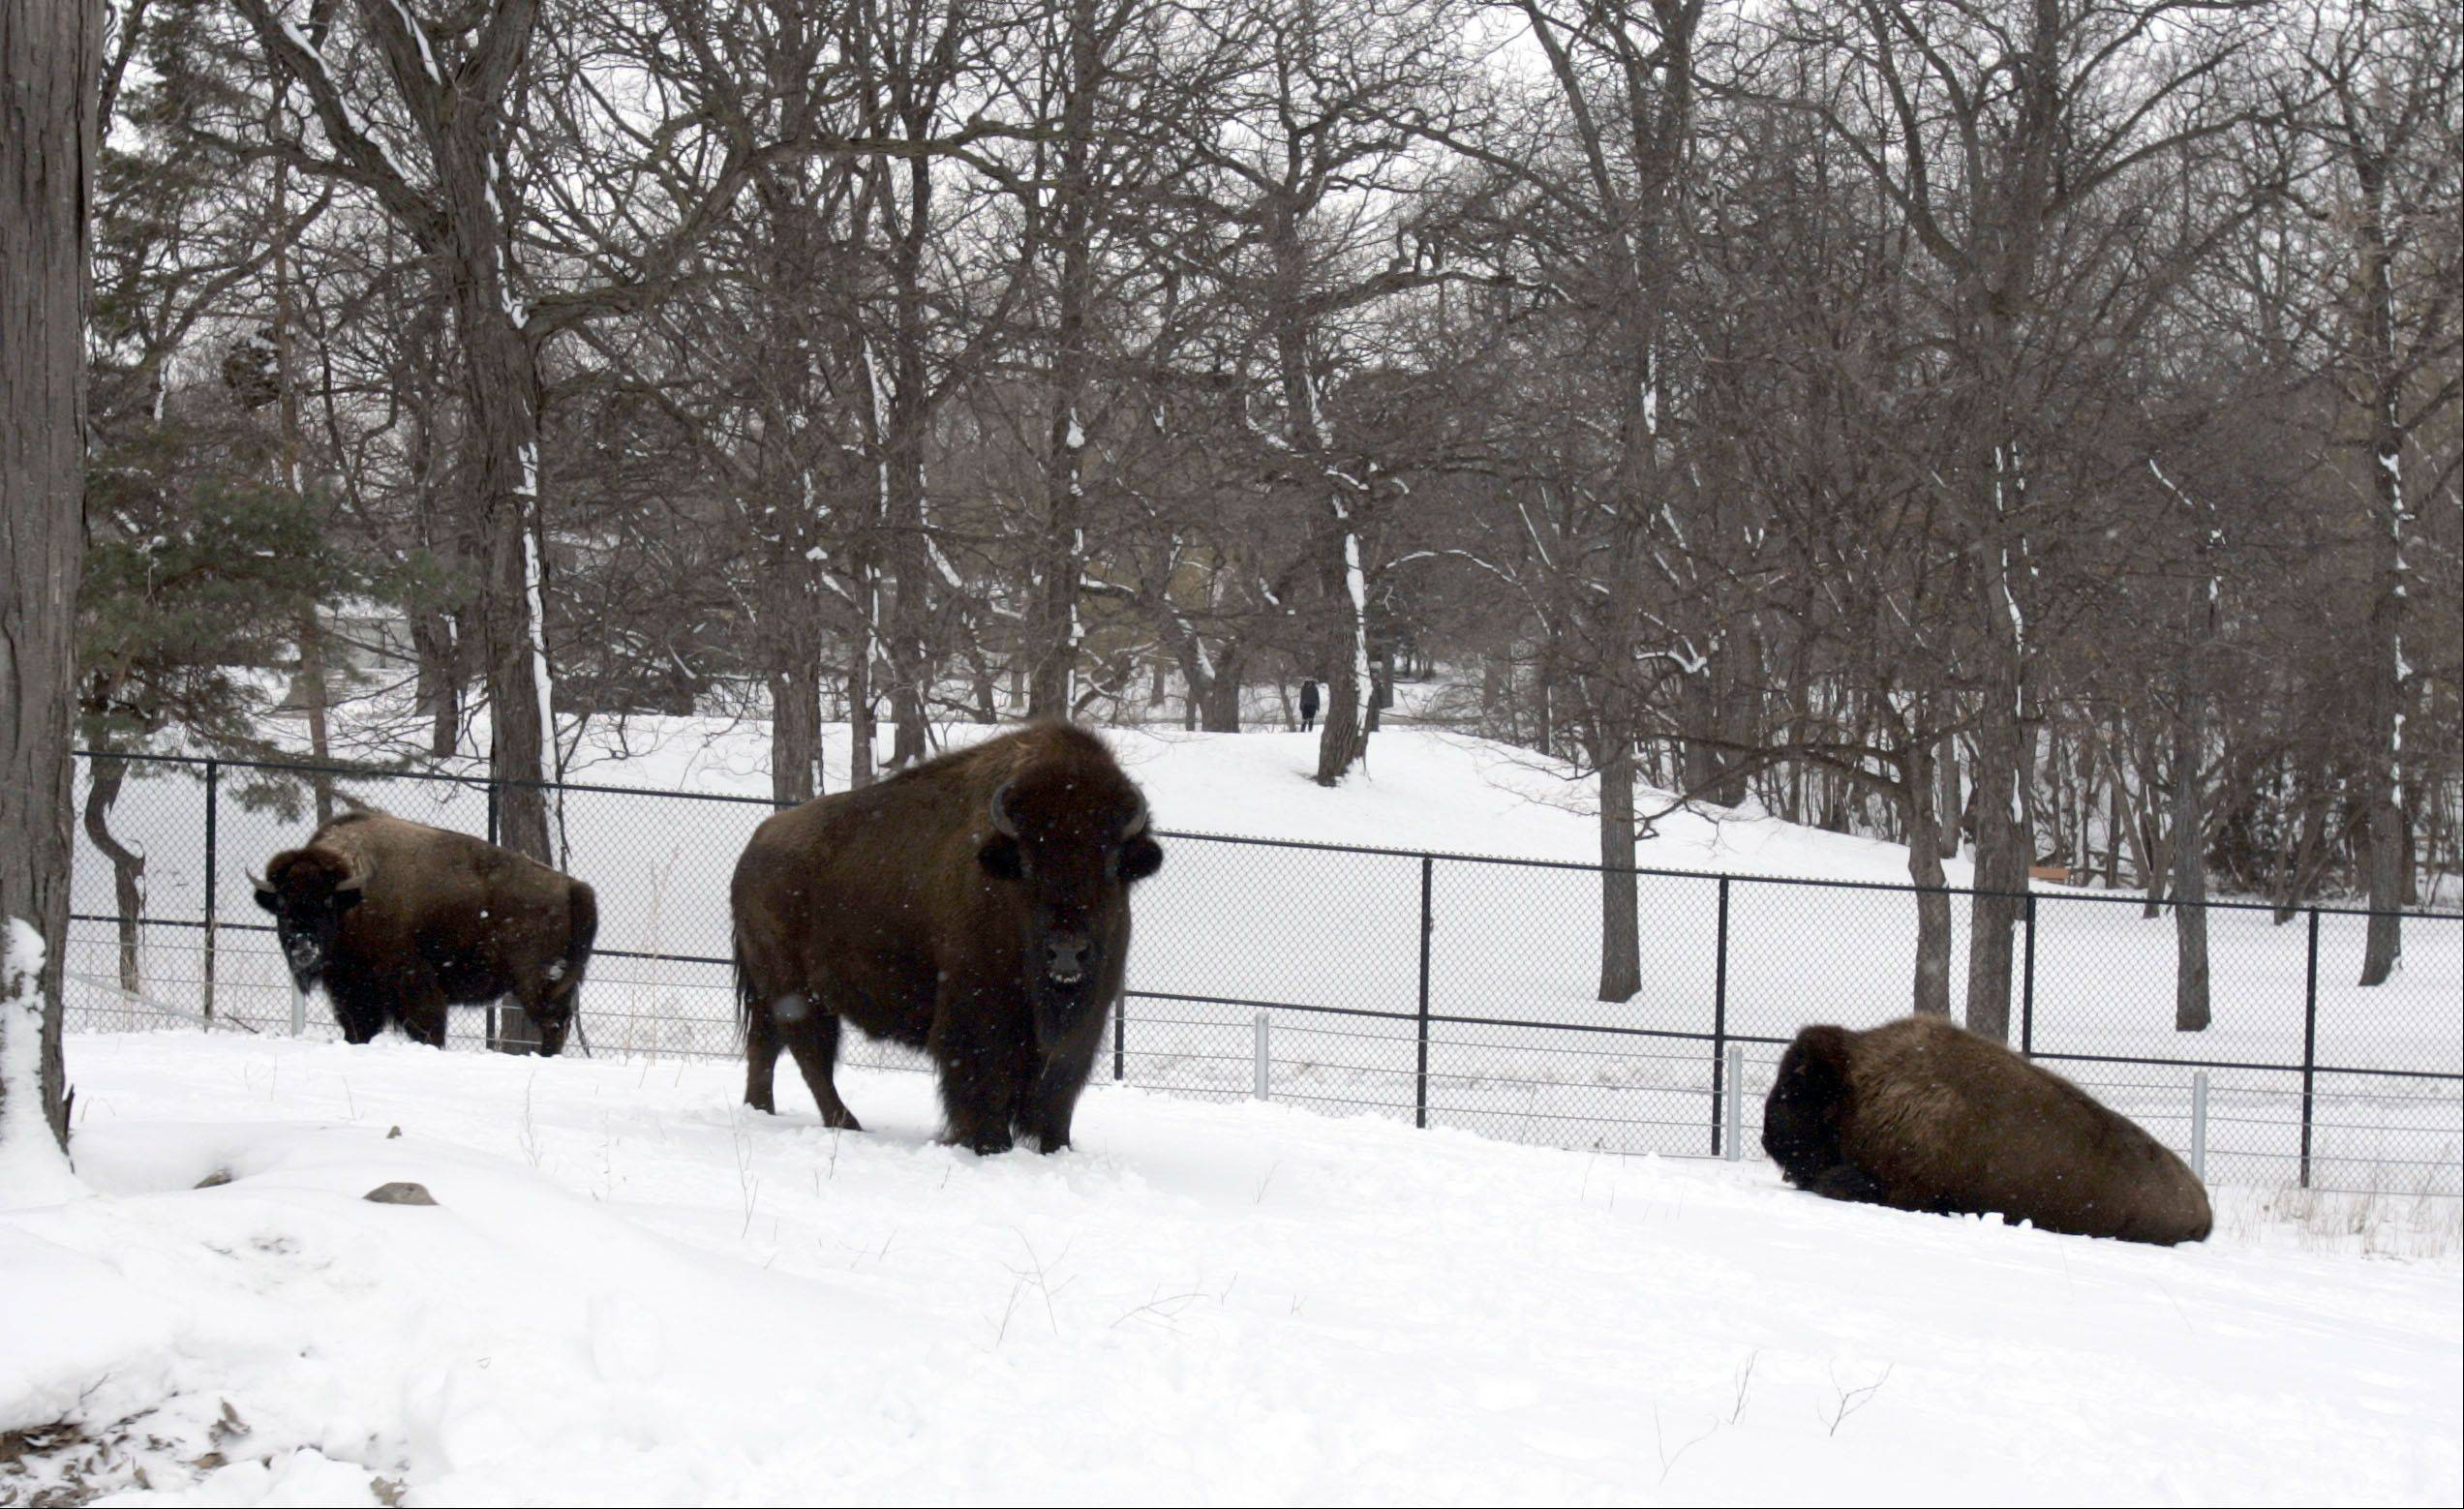 Longtime Lord�s Park Zoo bison Pokey, left, was joined this week by two new bison, Becky, middle, and Drew, who were donated by Brookfield Zoo. The newcomers have acclimated themselves well to their new home, Elgin Parks Superintendent Jim Bell said.